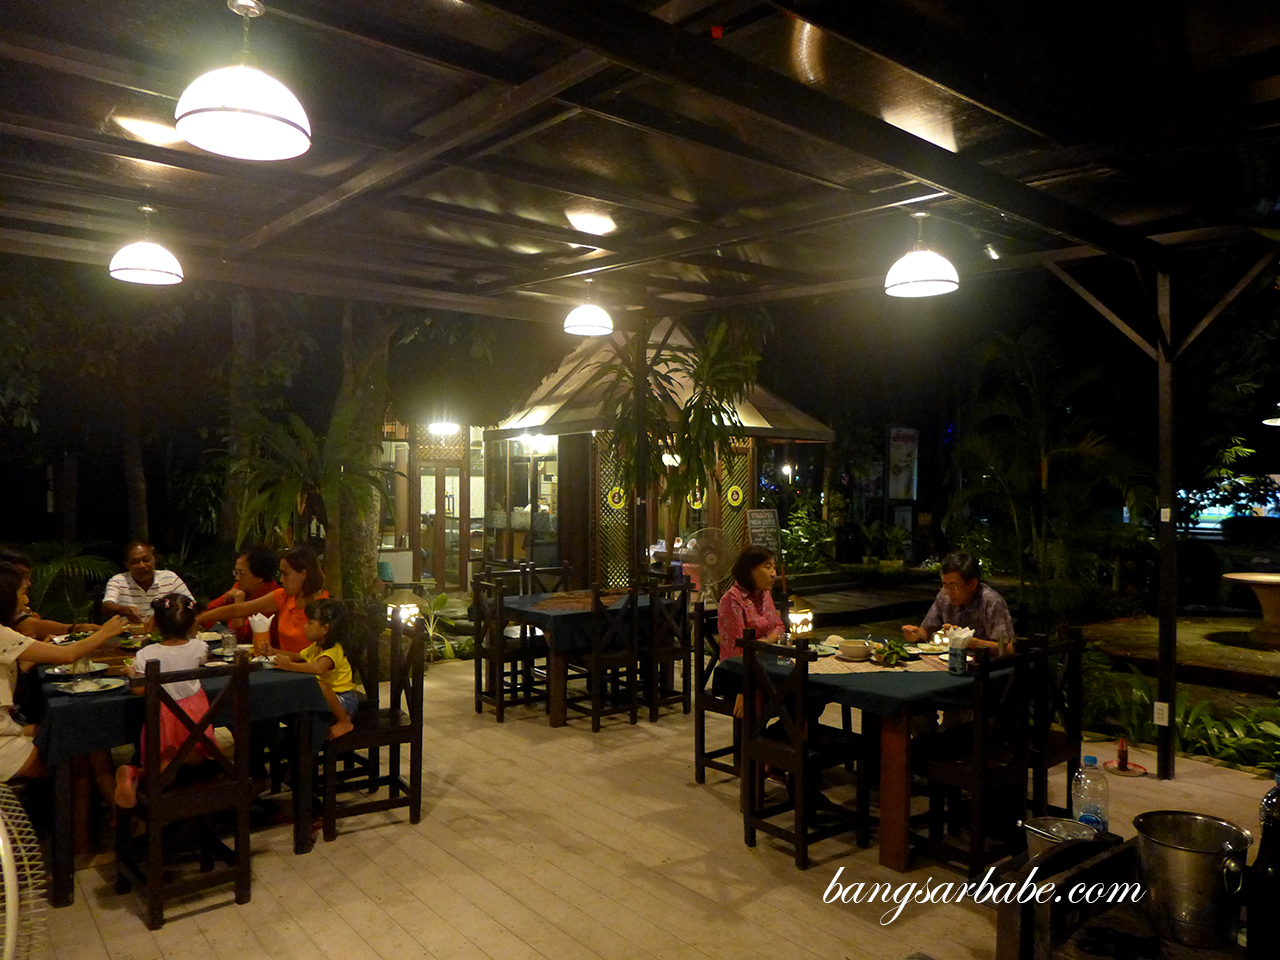 Anchalee restaurant krabi bangsar babe for Anchalee thai cuisine